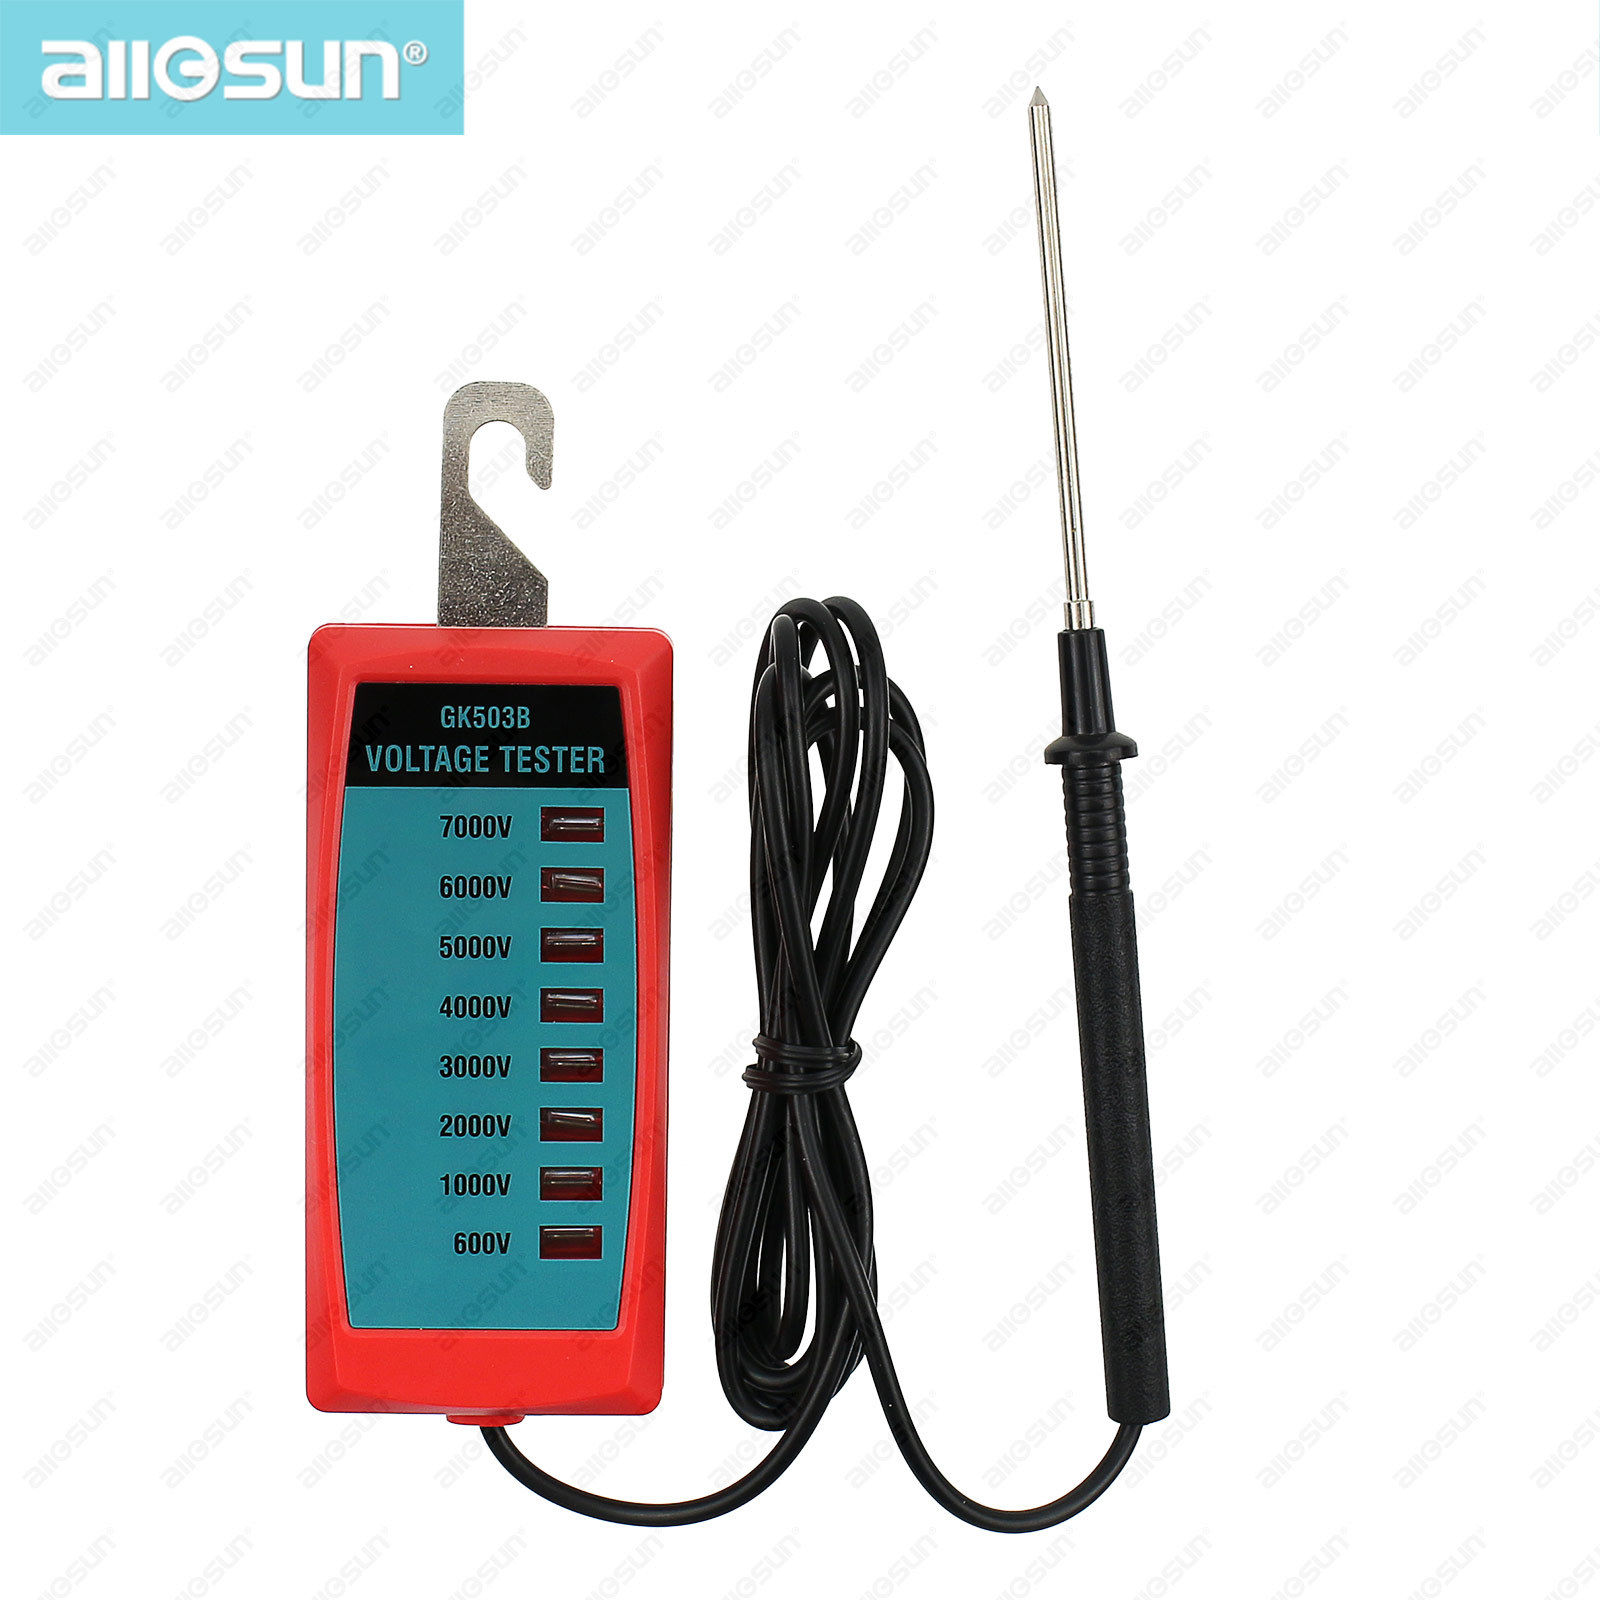 All In One Electrical Testers : All sun gk b electric fence voltage tester v to